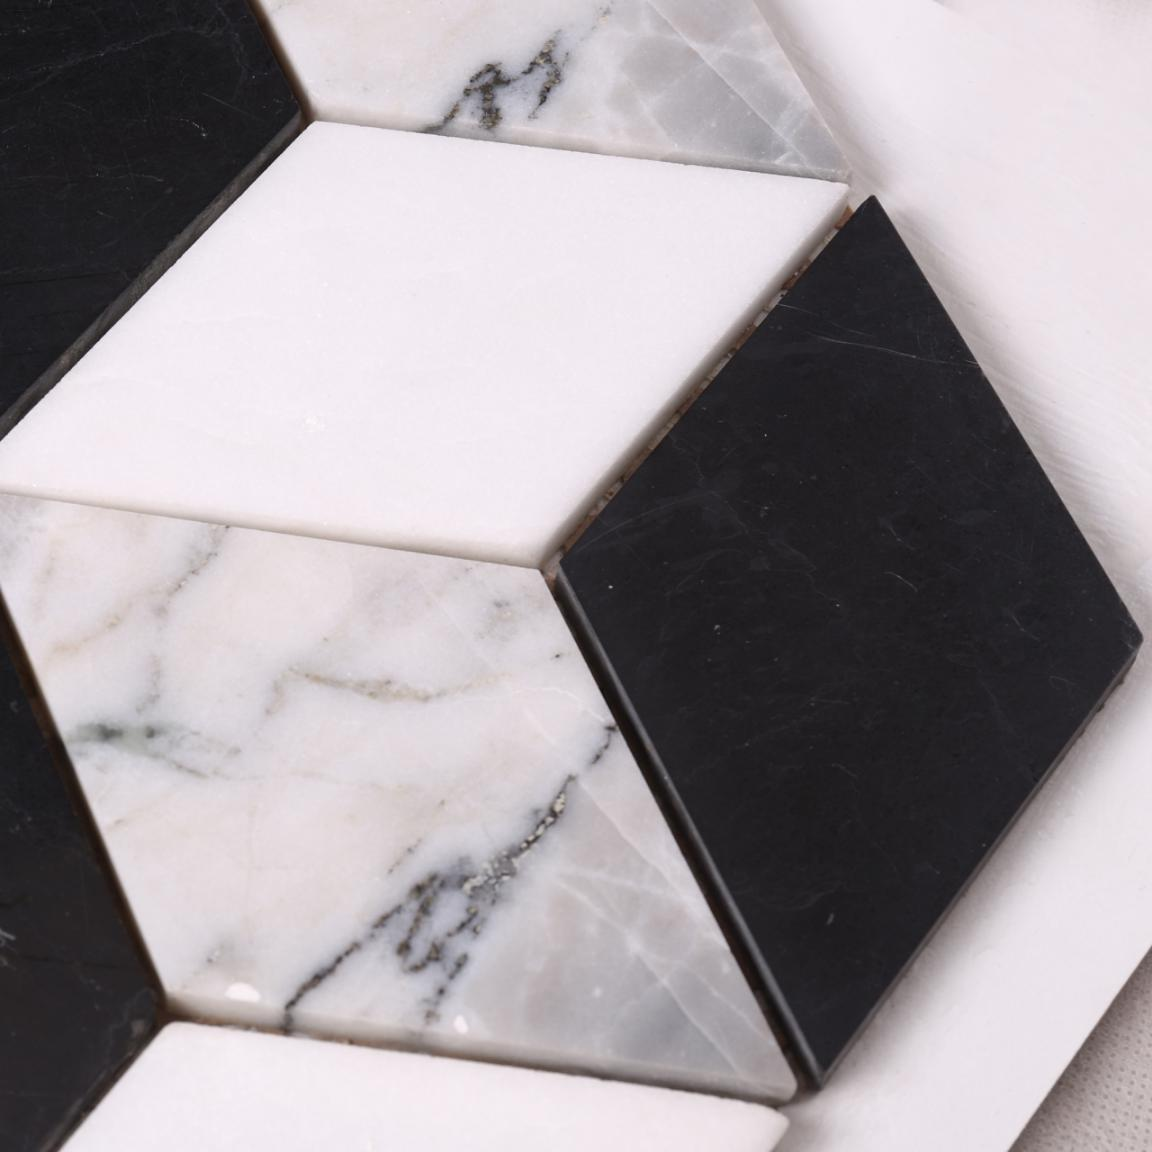 Heng Xing mosaic carrara herringbone company for backsplash-Heng Xing-img-1